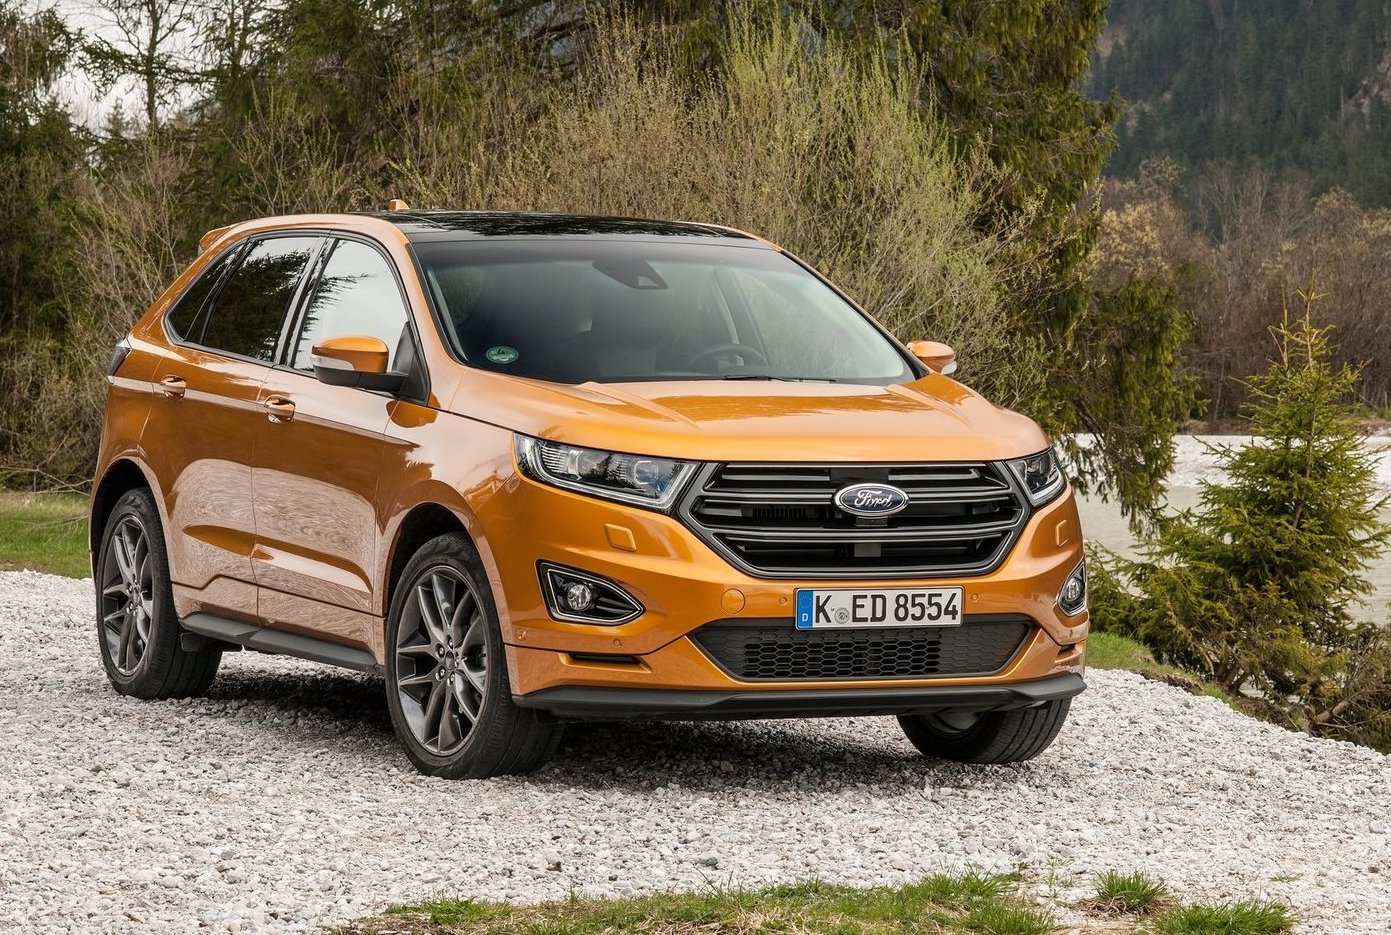 Top 10 best 7-seater SUVs coming to Australia in 2018-2019 | Top10Cars